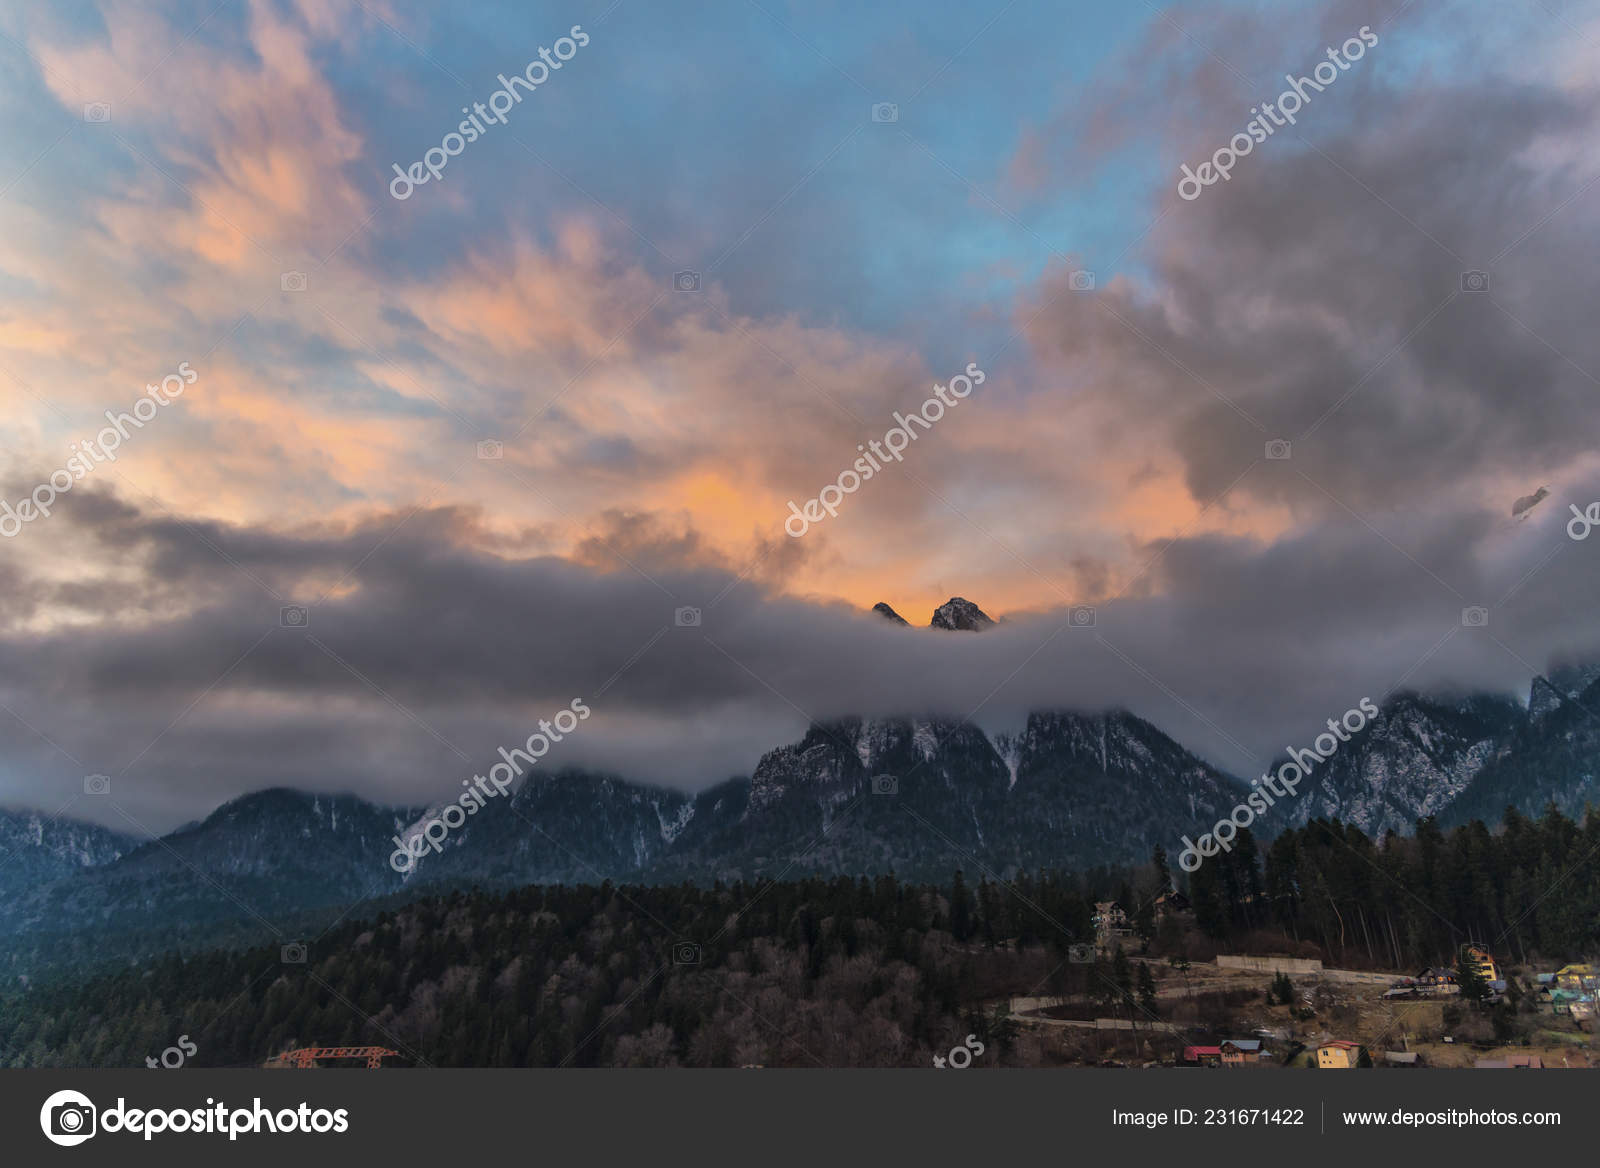 Majestic Purple Sunset Sunrise Sky Mountains Clouds Stock Photo C Somra Stefan Gmail Com 231671422